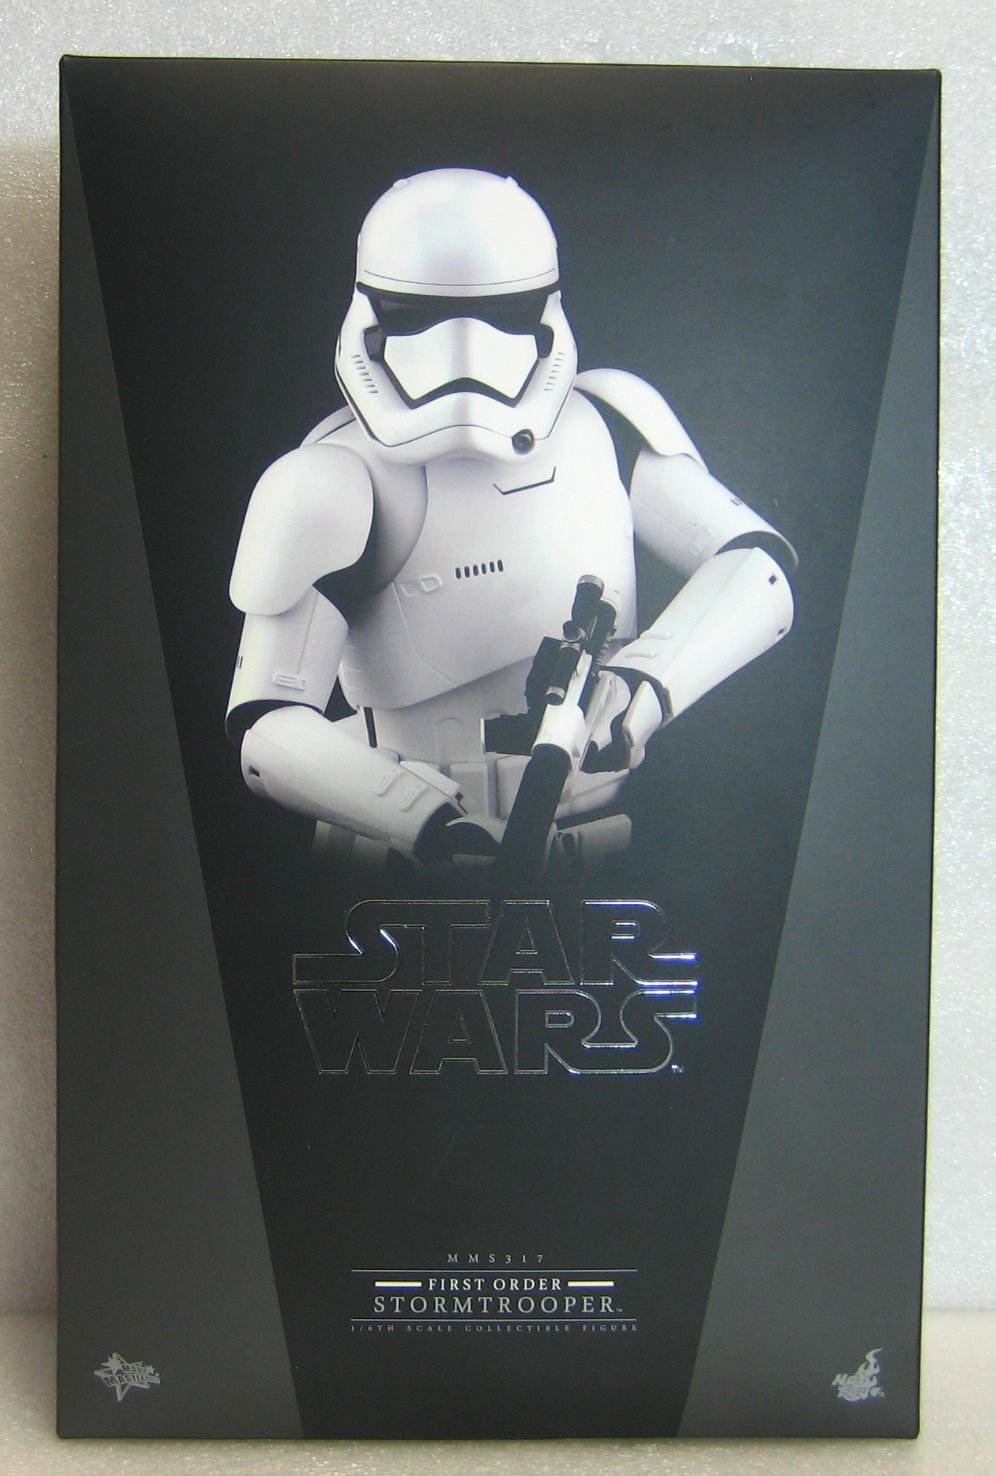 Hot Toys Star Wars First Order Stormtrooper 1:6 Scale Figure